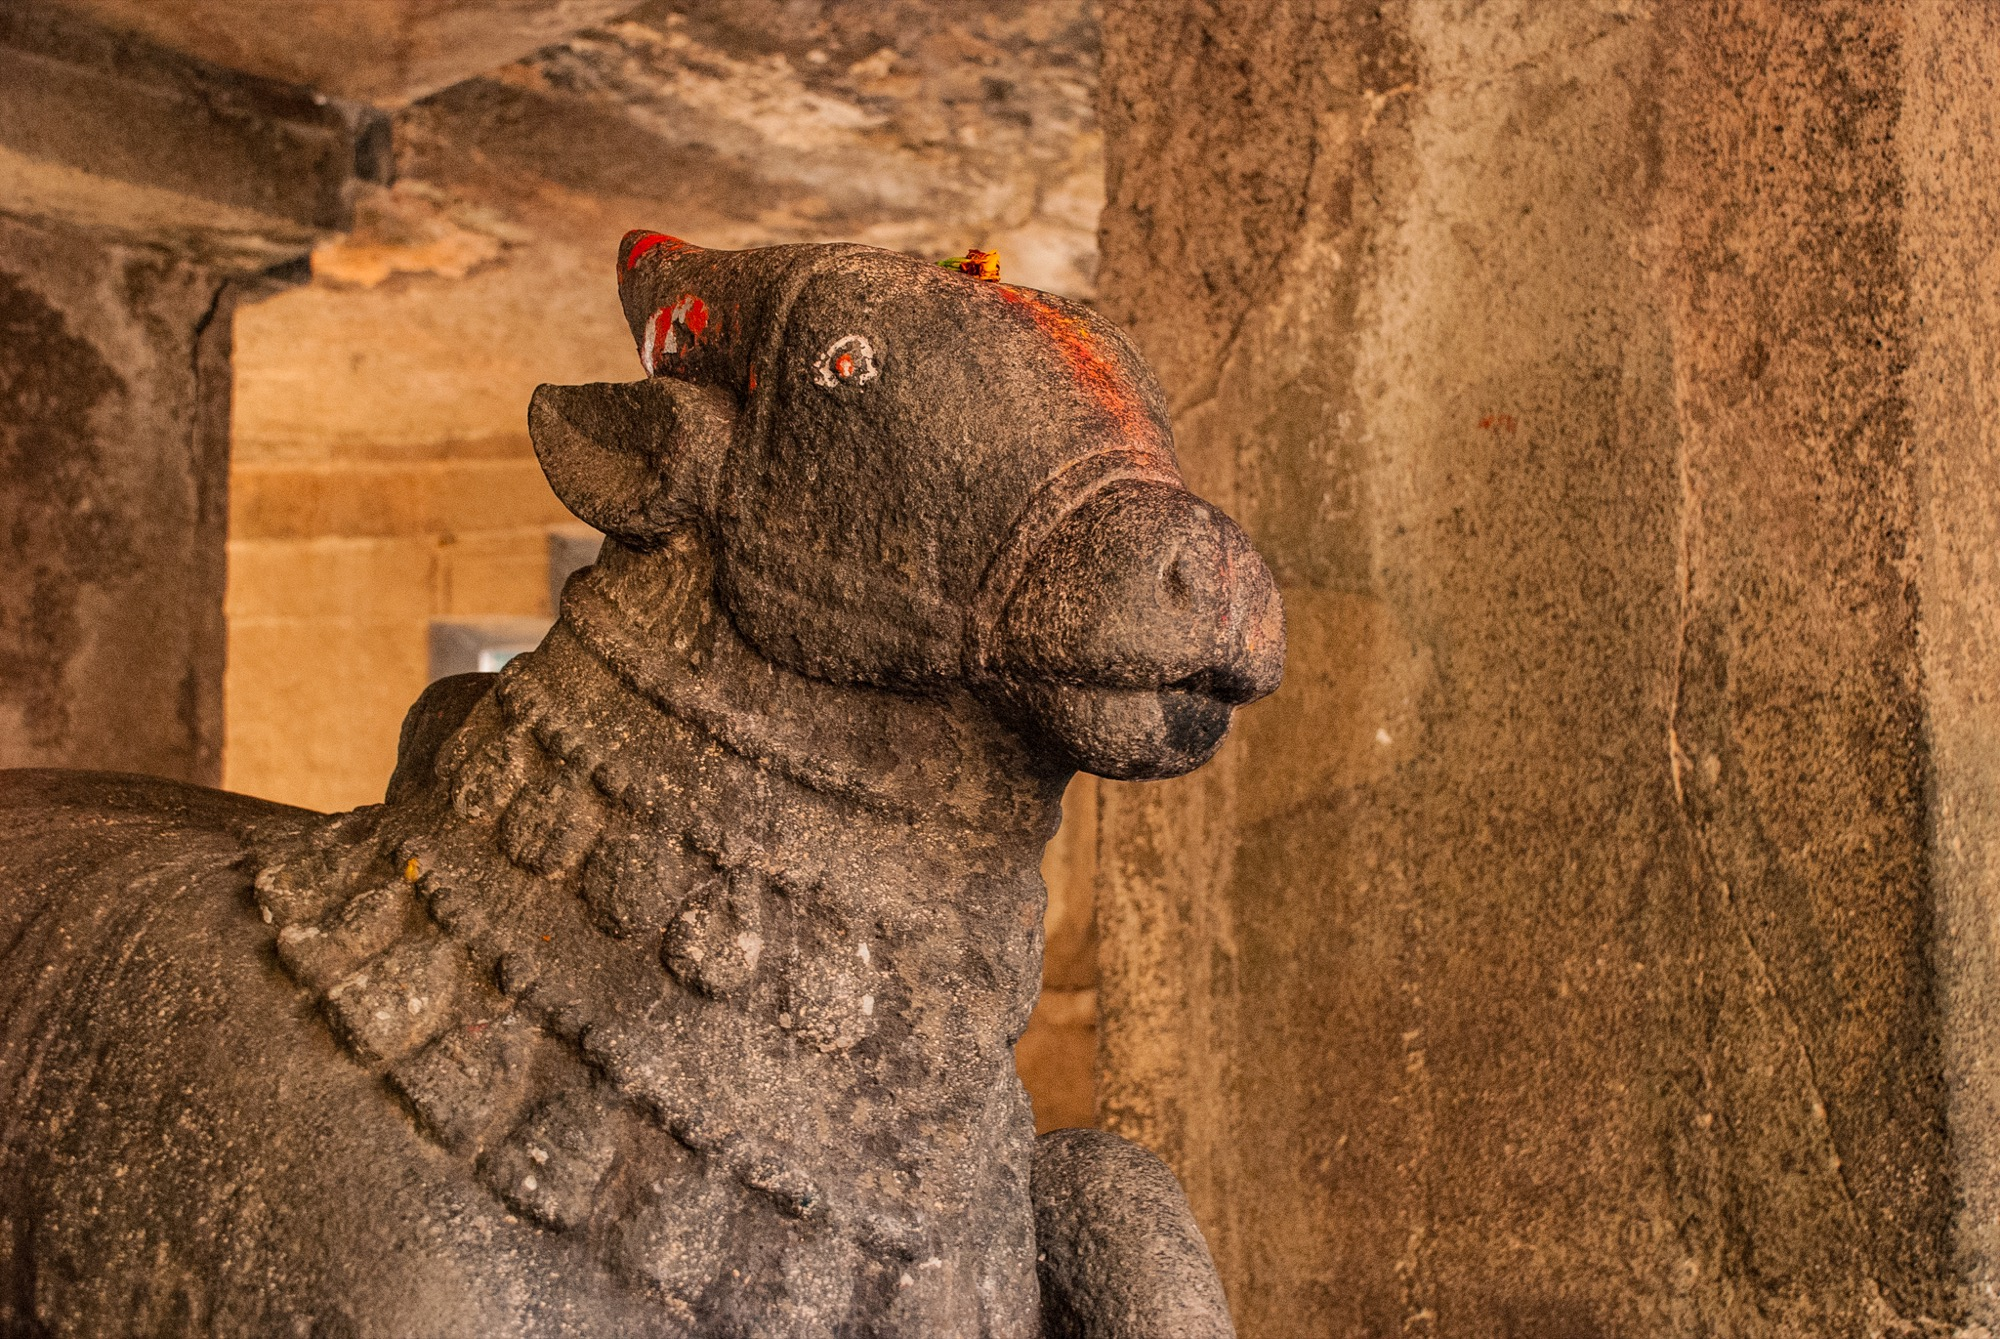 Pataleshwar caves - Pune's hip underground meet-up place since a cool 1300 years! 2